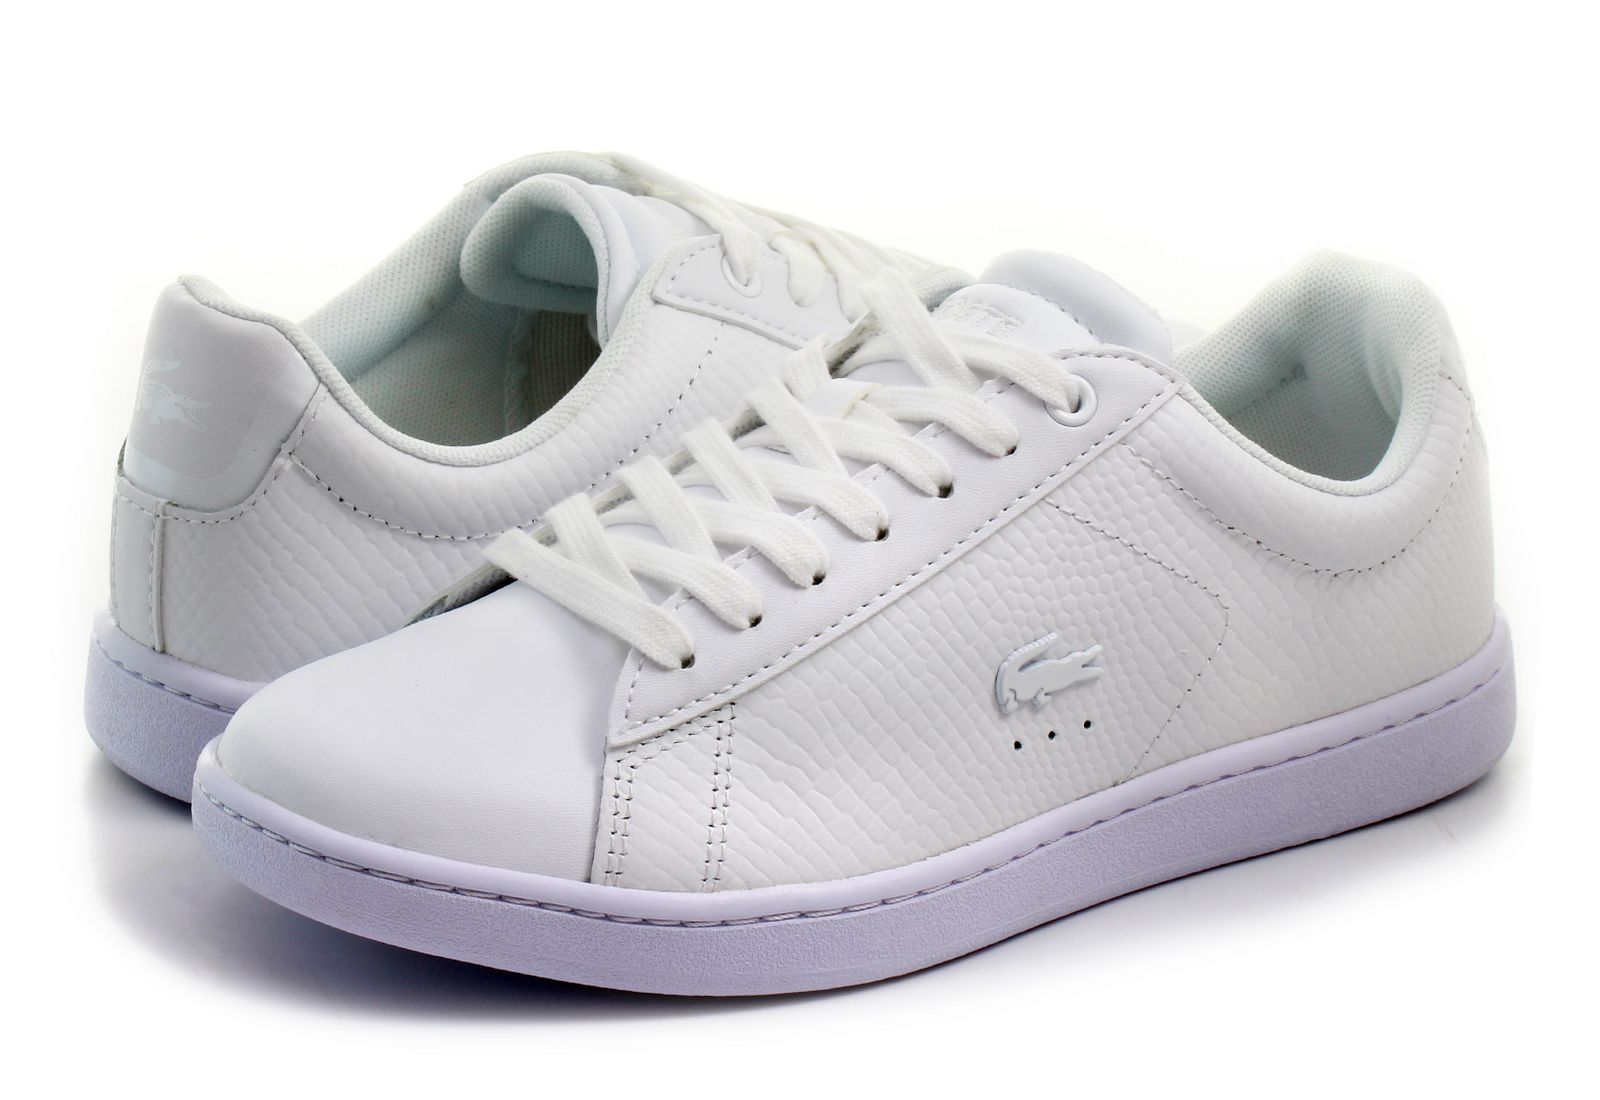 Lacoste Cipő - Carnaby Evo - 173SPW0008-001 - Office Shoes ... 967ddd21d6